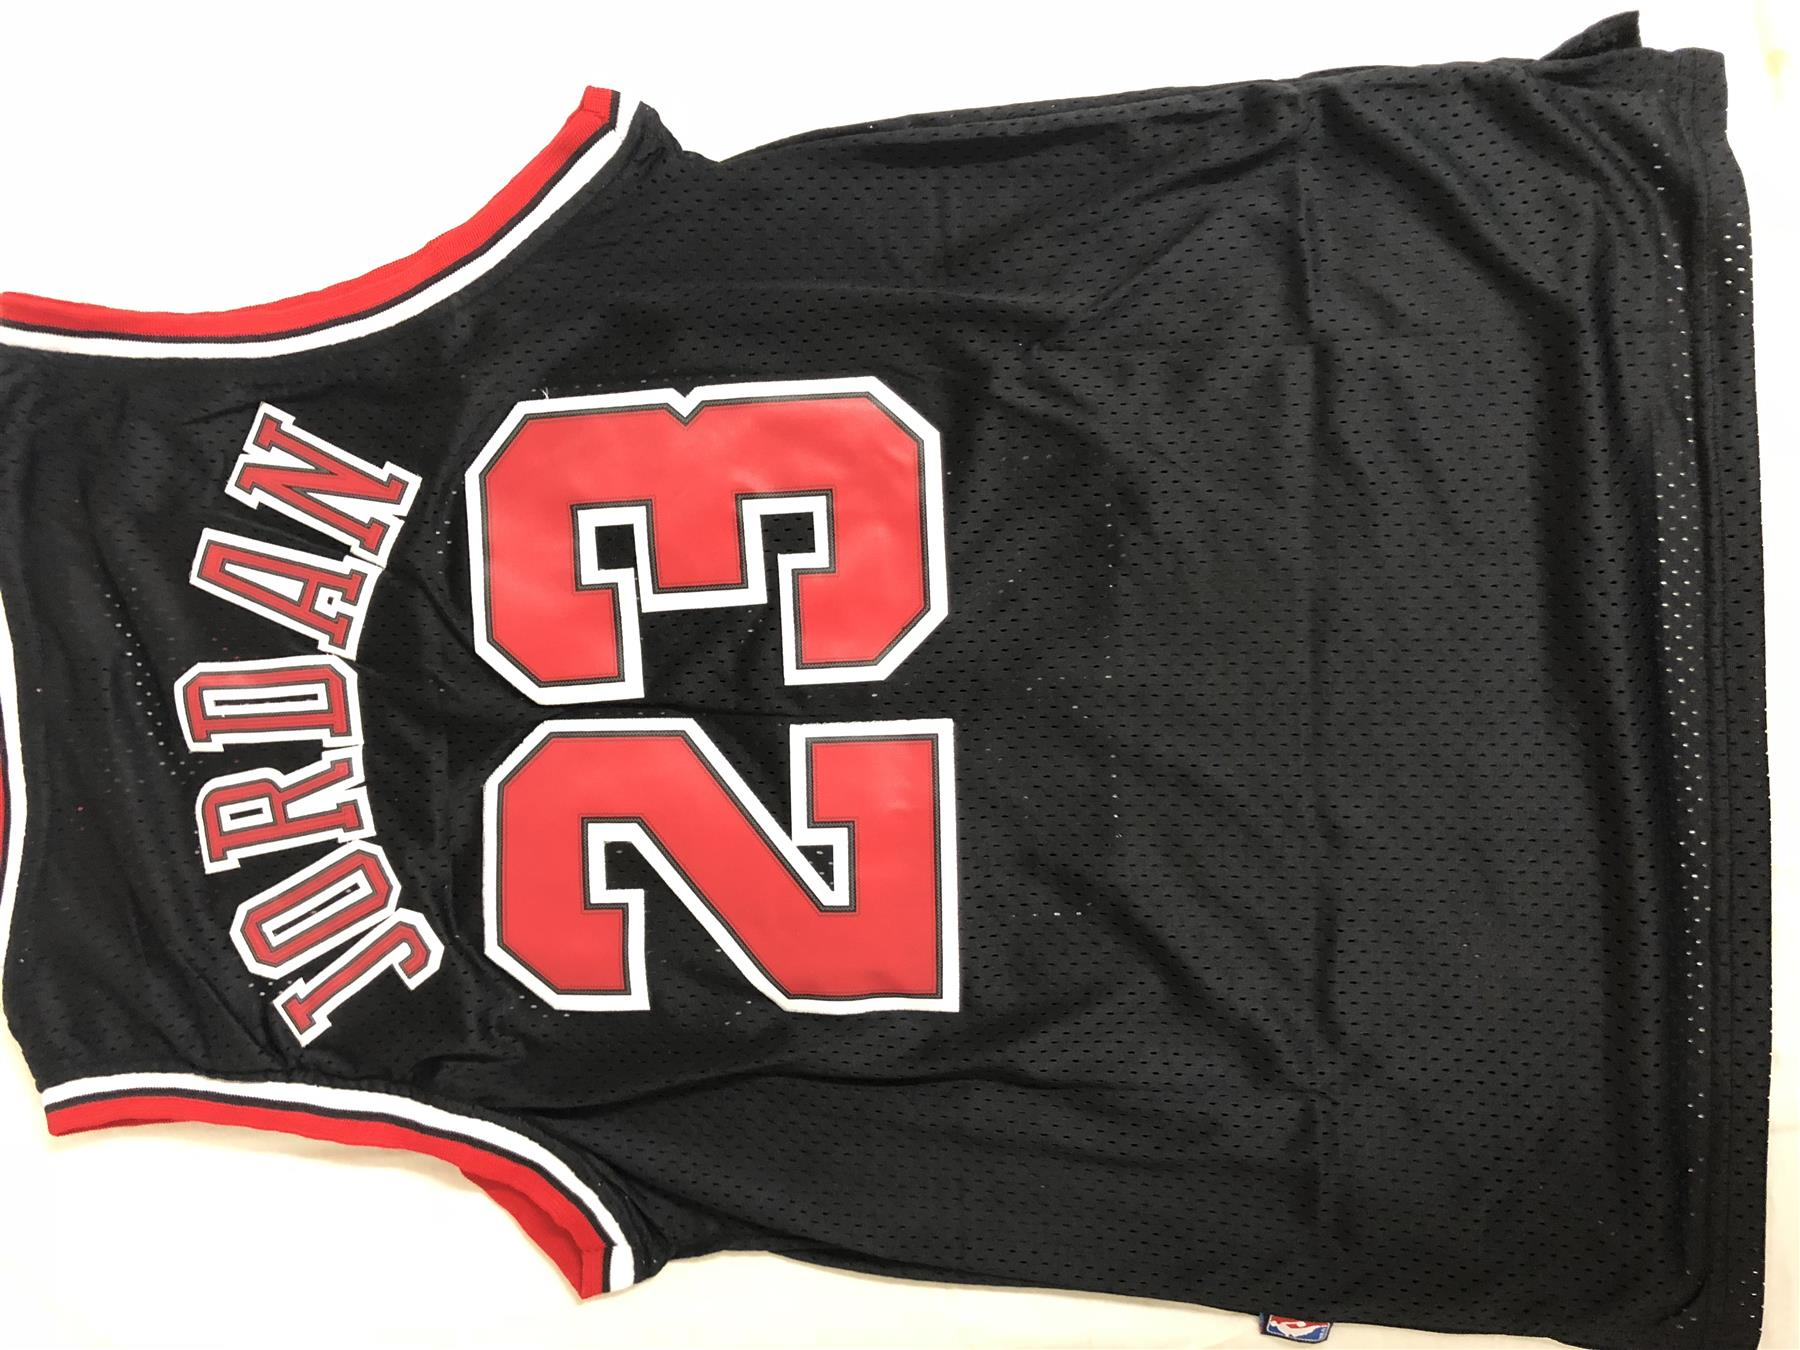 MICHAEL-JORDAN-CHICAGO-BULLS-23-BLACK-NBA-Basketball-SWINGMAN-JERSEY-Shirt miniature 15